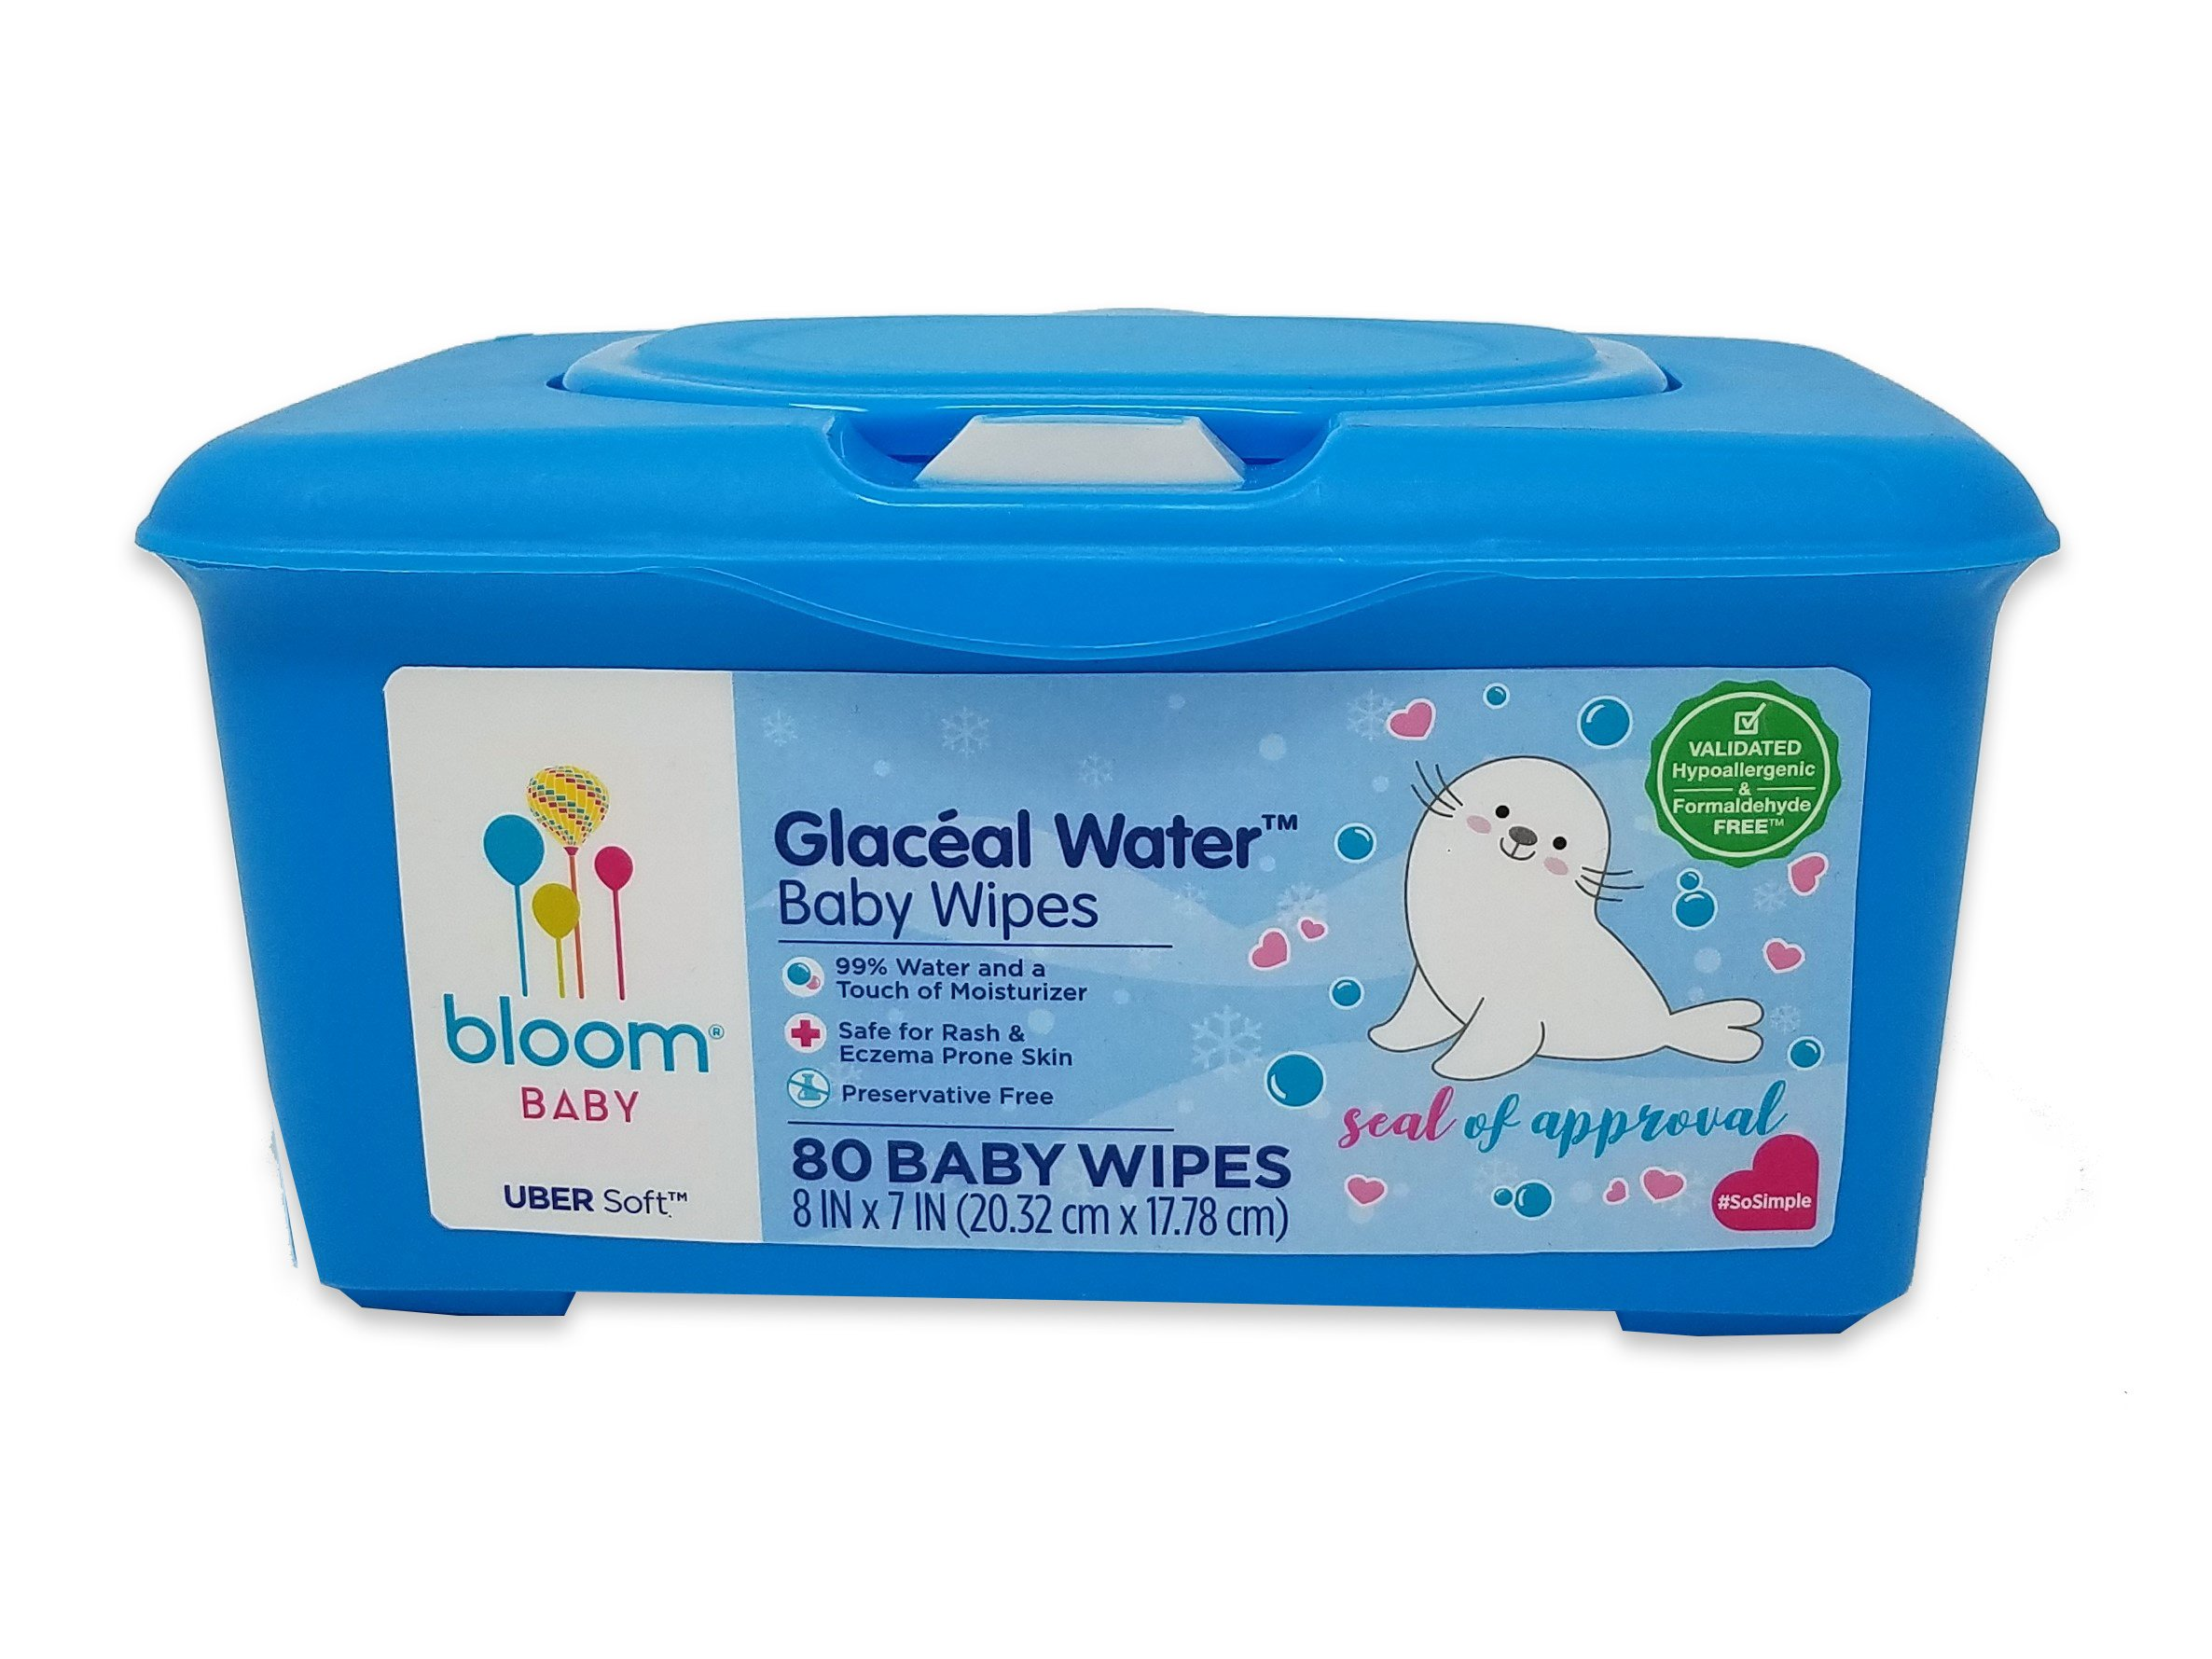 """Glacial Water Baby Wipes by bloom BABY 